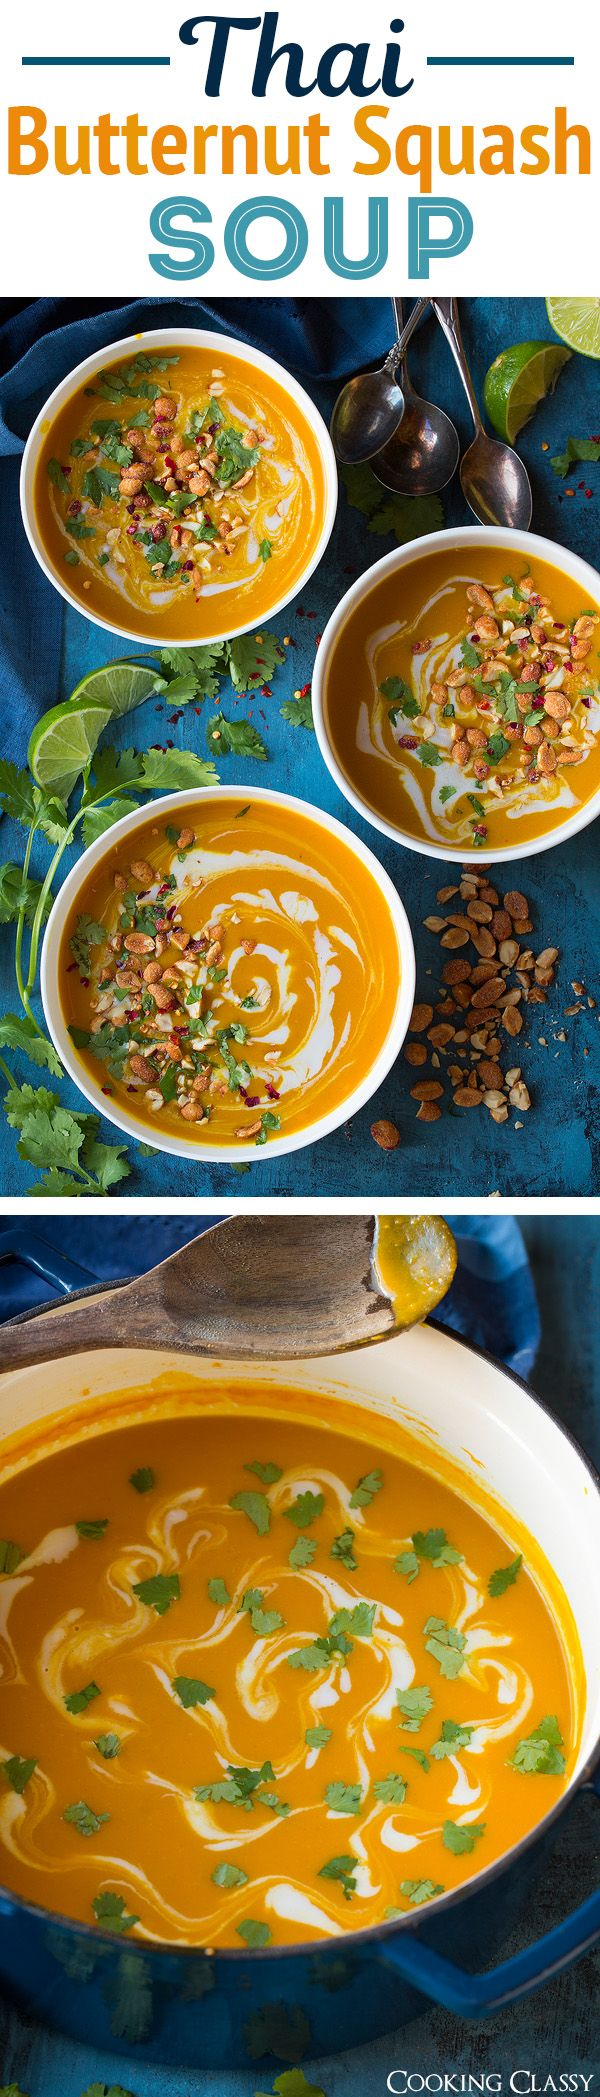 327 best food around the world images on pinterest asian food thai butternut squash soup easy flavorful and so delicious forumfinder Gallery